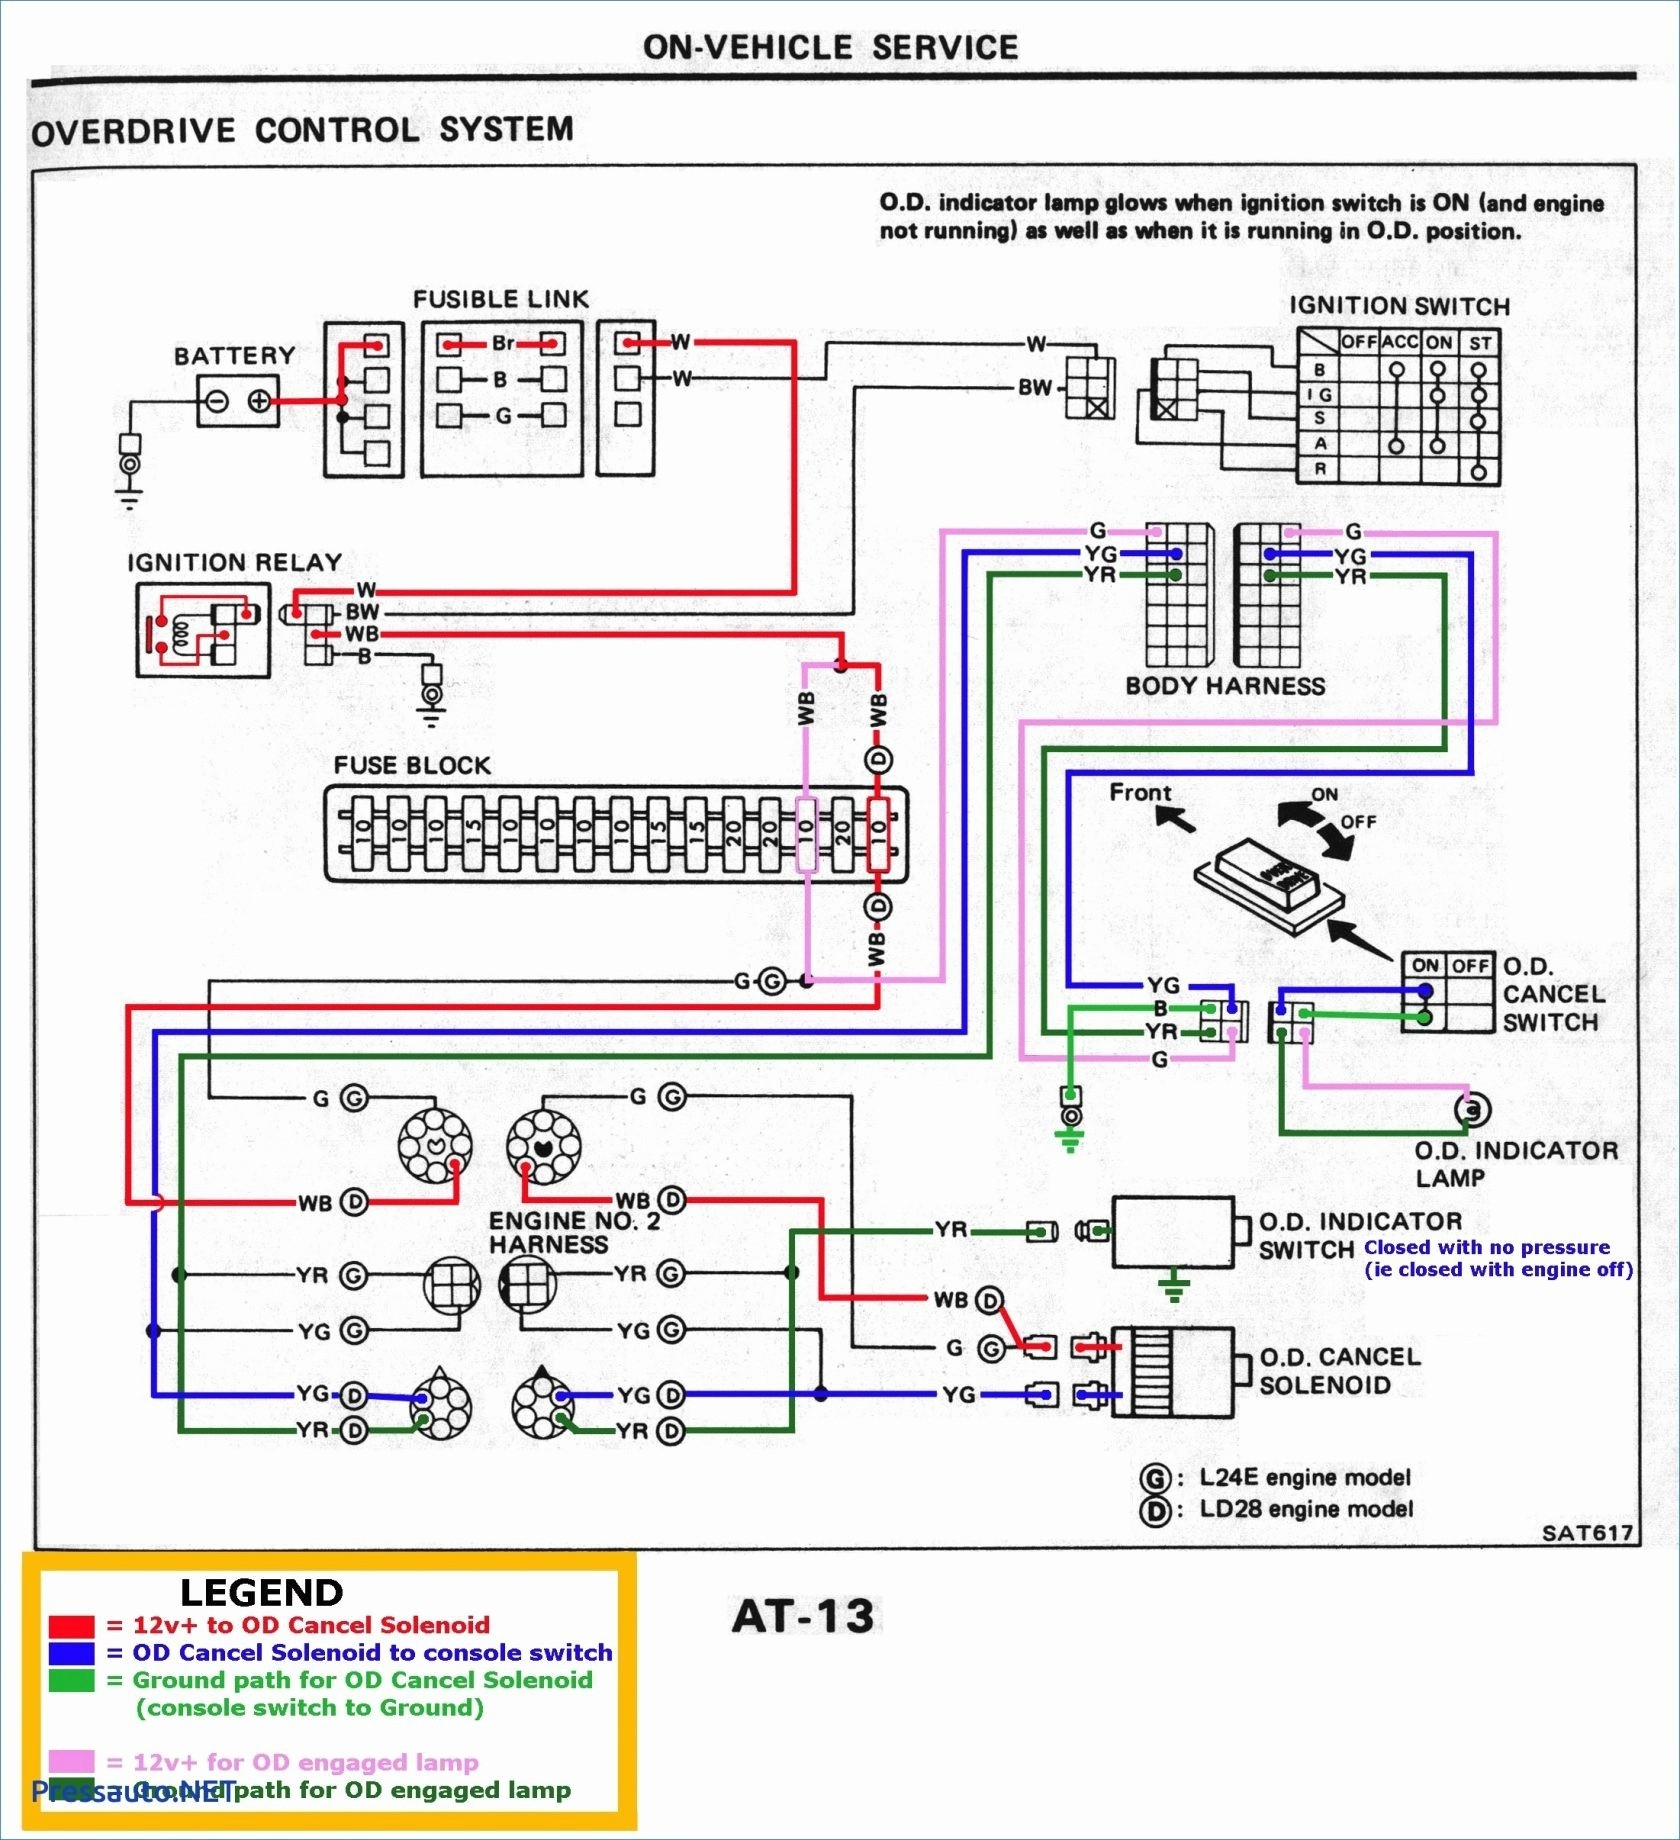 xd9000 warn winch wiring diagram Collection-Xd9000 Warn Winch Wiring Diagram Wiring Diagram for Warn Winch Fresh Wiring Diagram Warn A2000 20-s